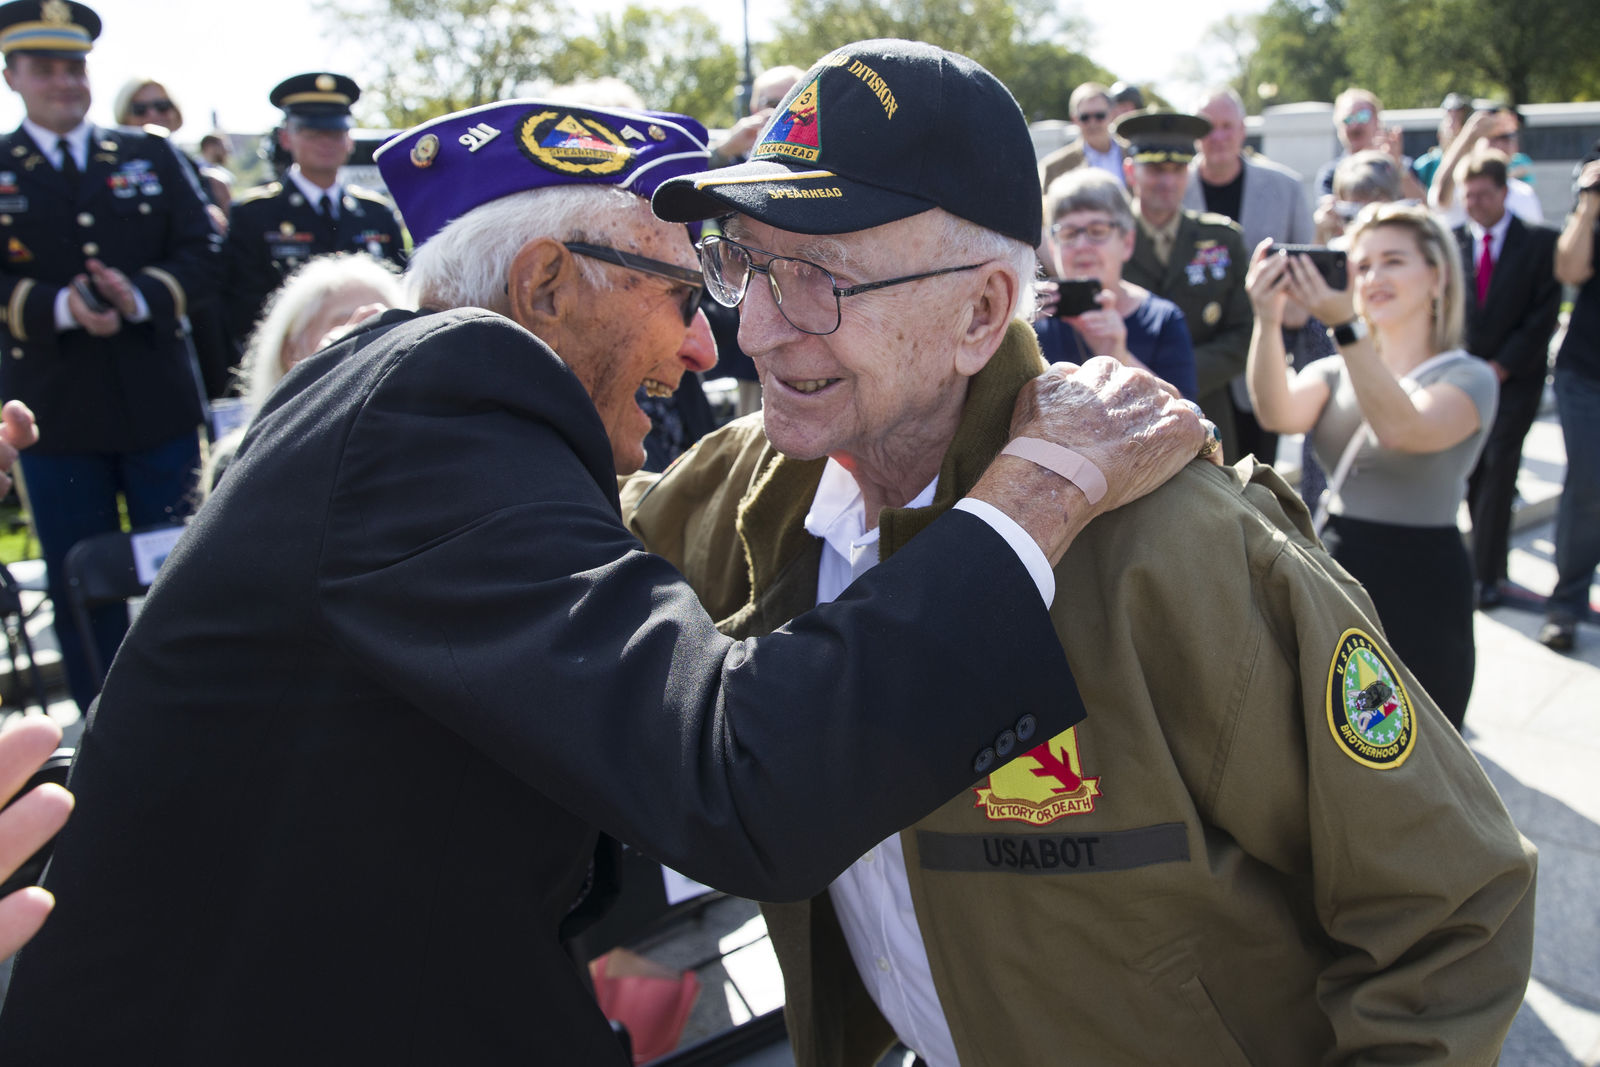 World War II veterans Joseph Caserta, left, and Clarence Smoyer, 96, embrace before a ceremony to present the Bronze Star to Smoyer at the World War II Memorial, Wednesday, Sept. 18, 2019, in Washington.{ } (AP Photo/Alex Brandon)